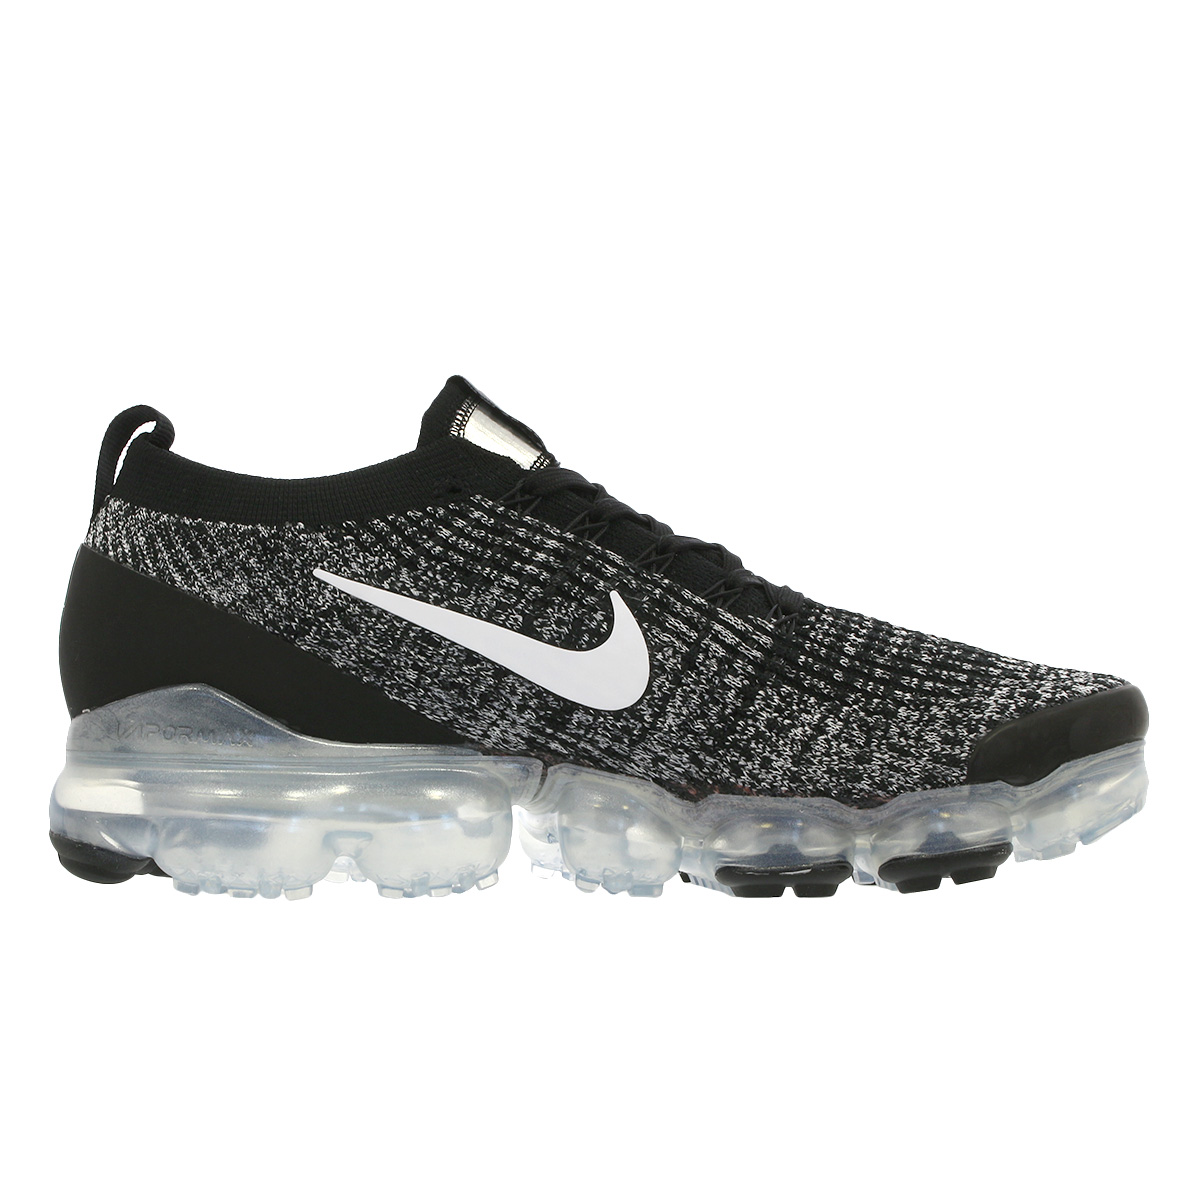 super popular bc574 5b9ee NIKE AIR VAPORMAX FLYKNIT 3 Nike vapor max fried food knit 3  BLACK/WHITE/METALLIC SILVER aj6900-002